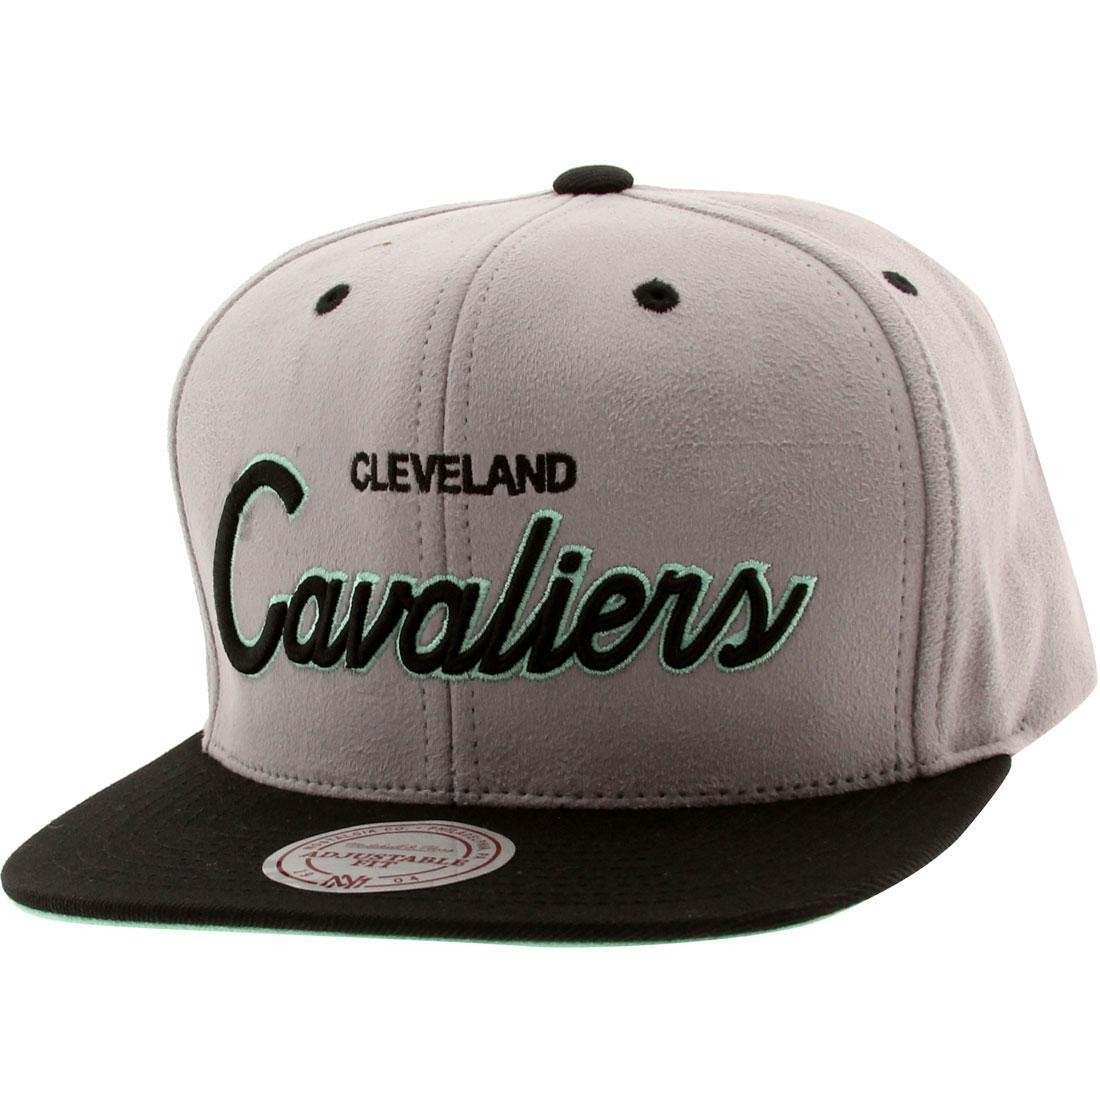 010fcd5d0 Mitchell And Ness Cleveland Cavaliers Lady Liberty Snapback Cap (gray /  black / teal)